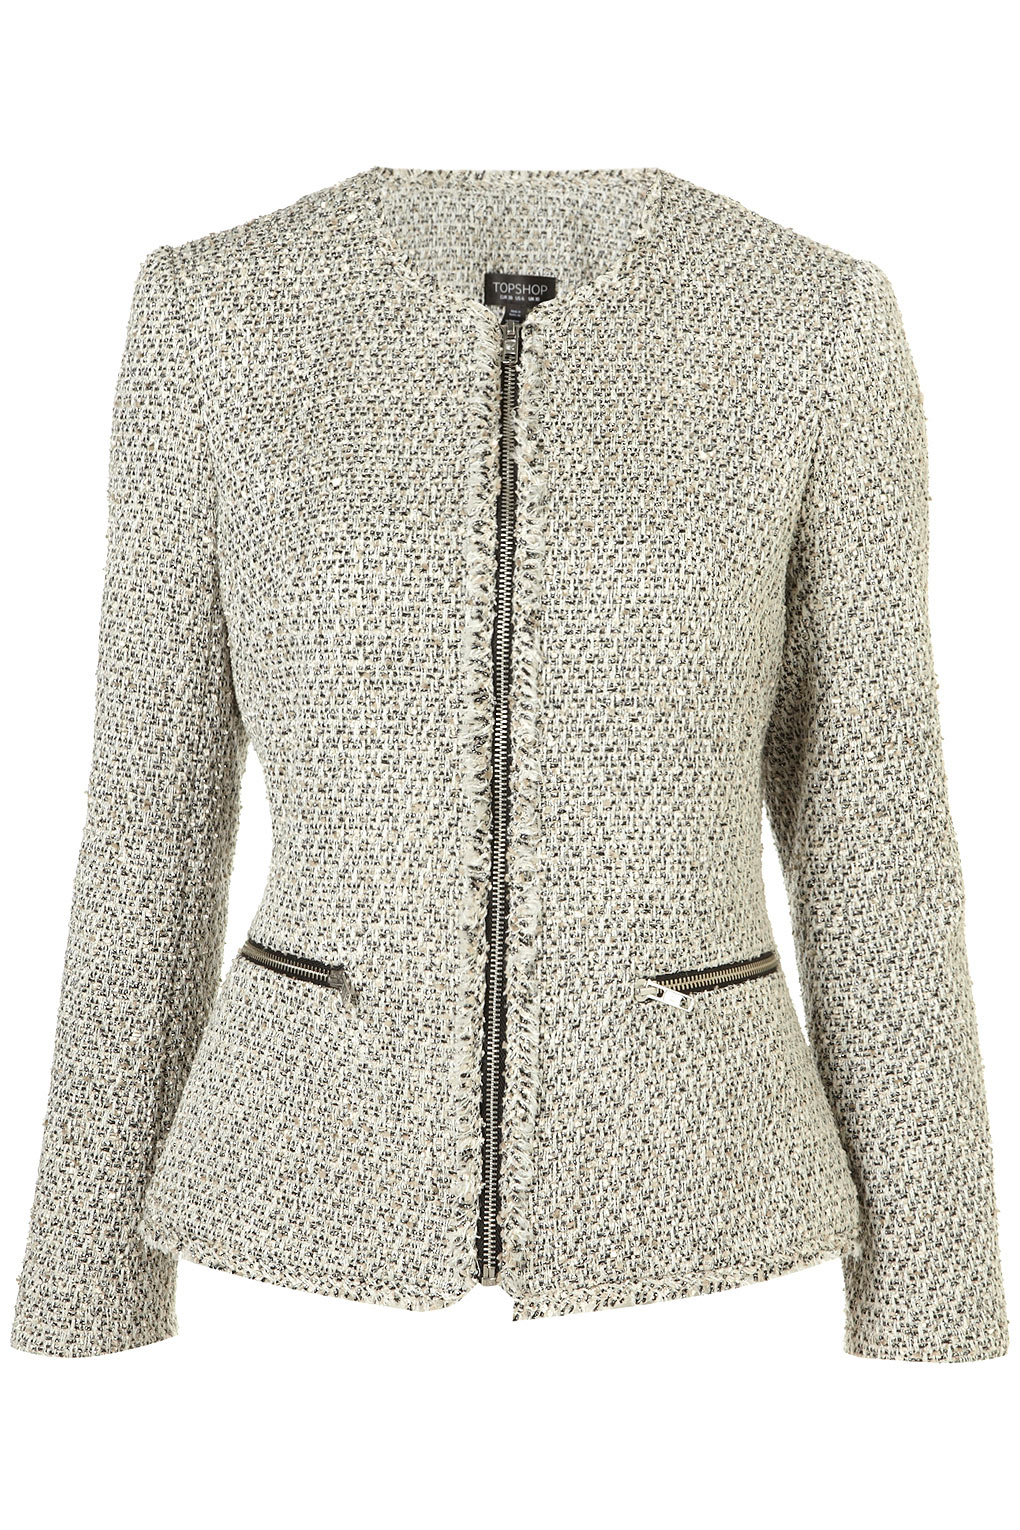 Topshop Raw Edge Zip Boucle Jacket In Gray Lyst